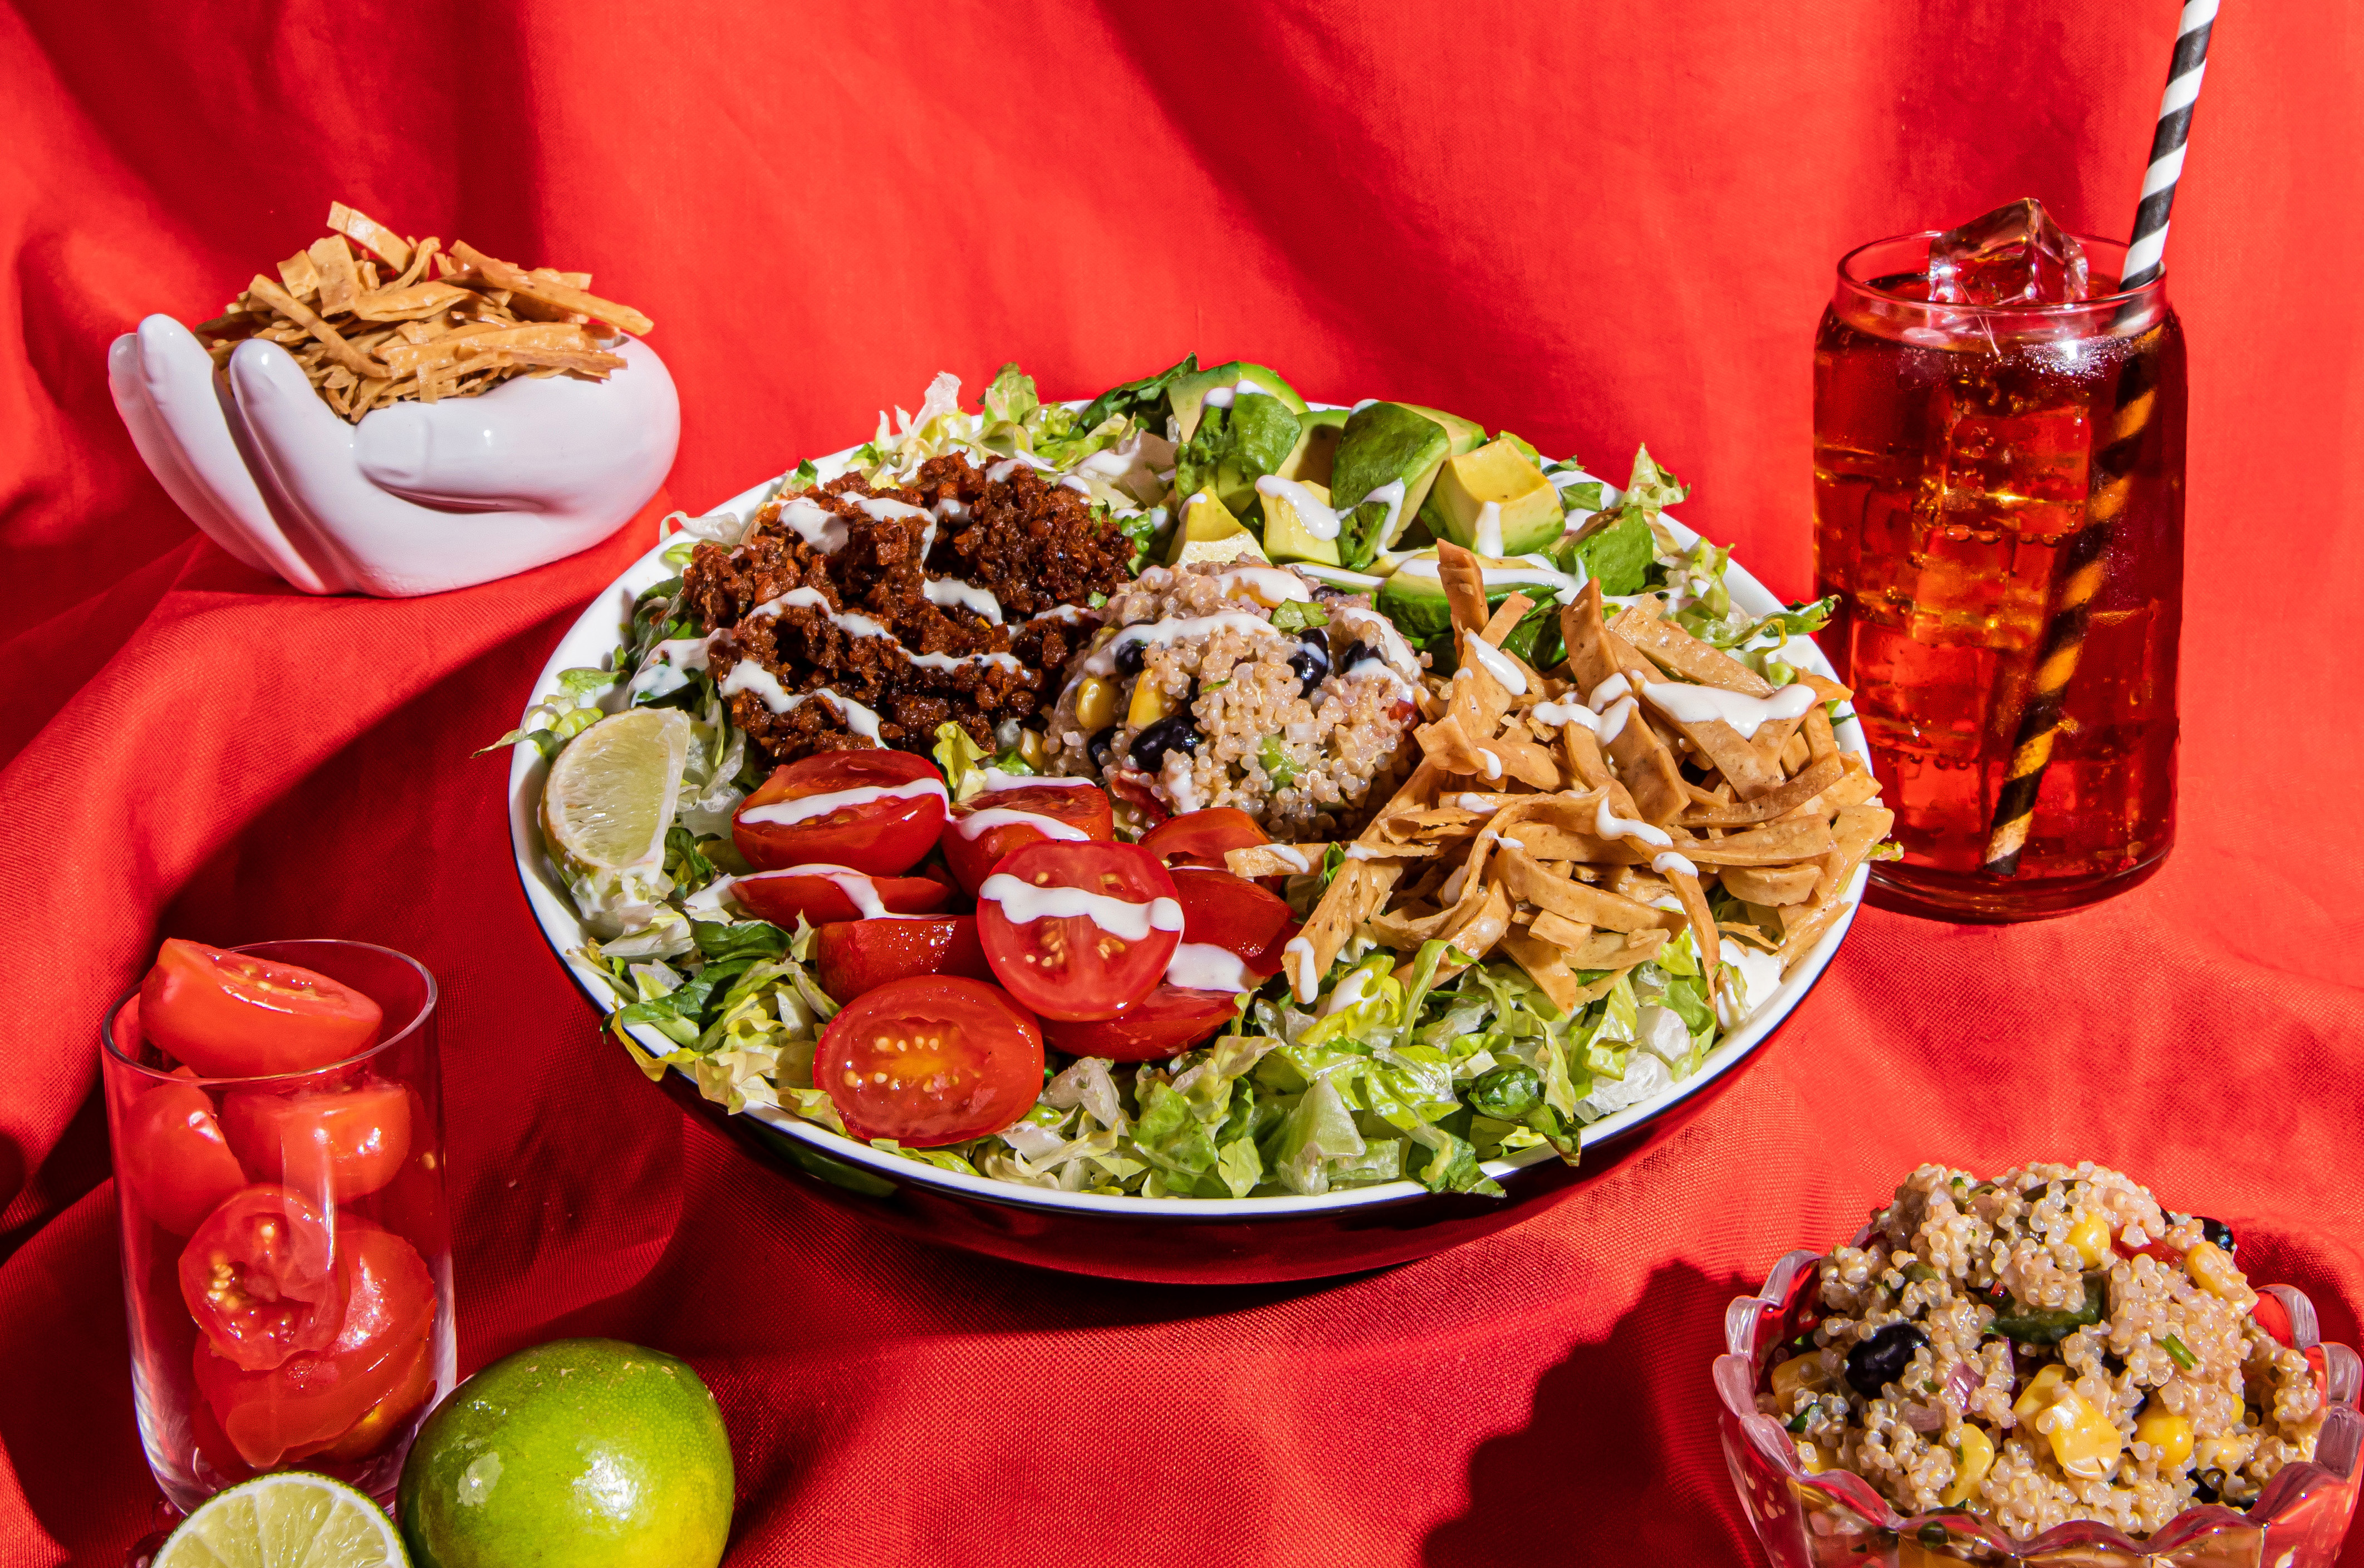 A large bowl filled with lettuce, tomatoes, quinoa, and strips of tortilla chip with limes, tomatoes, and a drink arranged around it on a red background